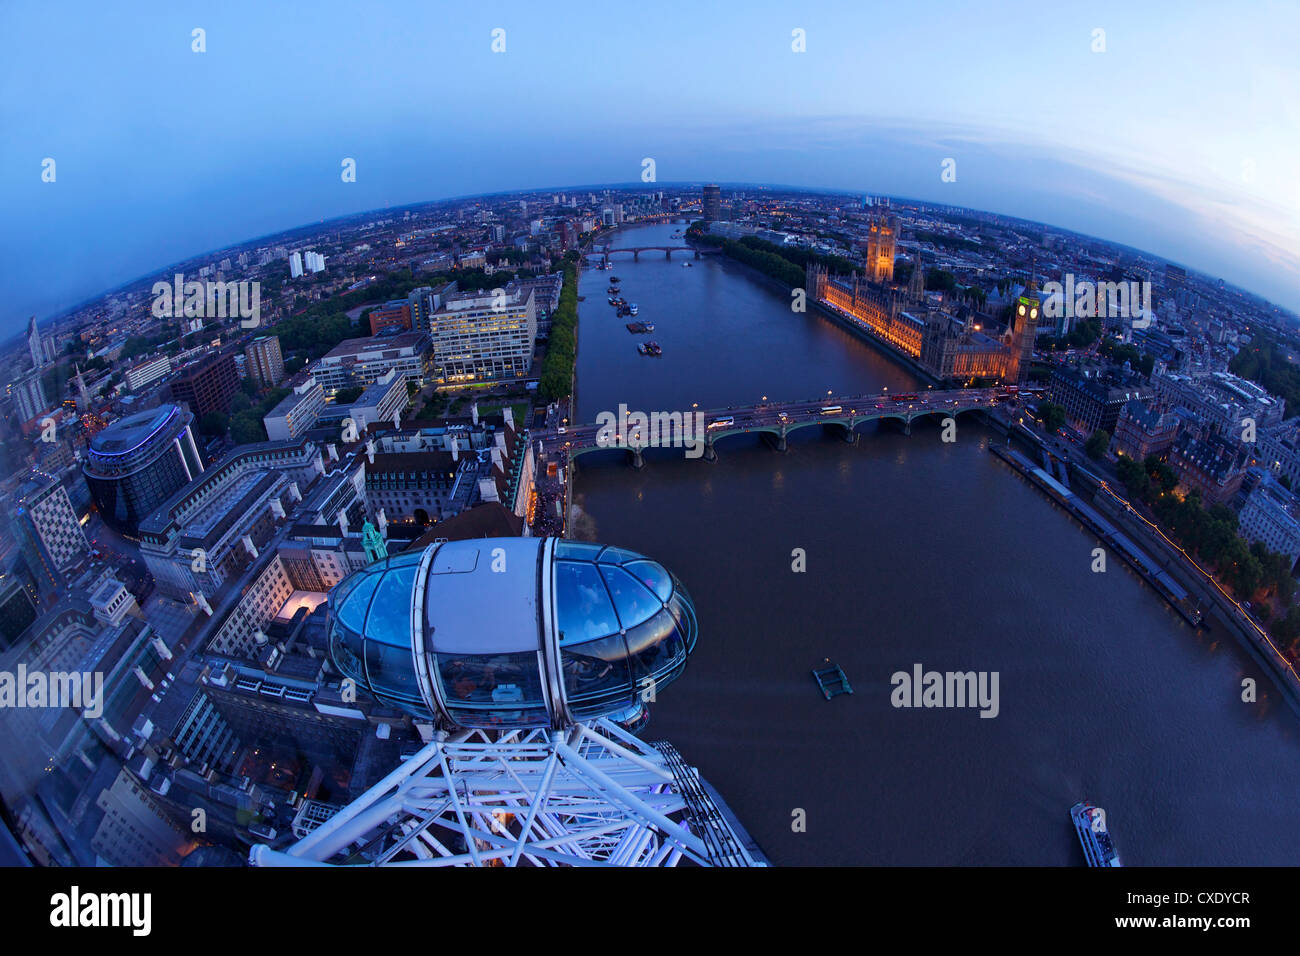 View of passenger pod capsule, Houses of Parliament, Big Ben and the River Thames from the London Eye at dusk, London, Stock Photo